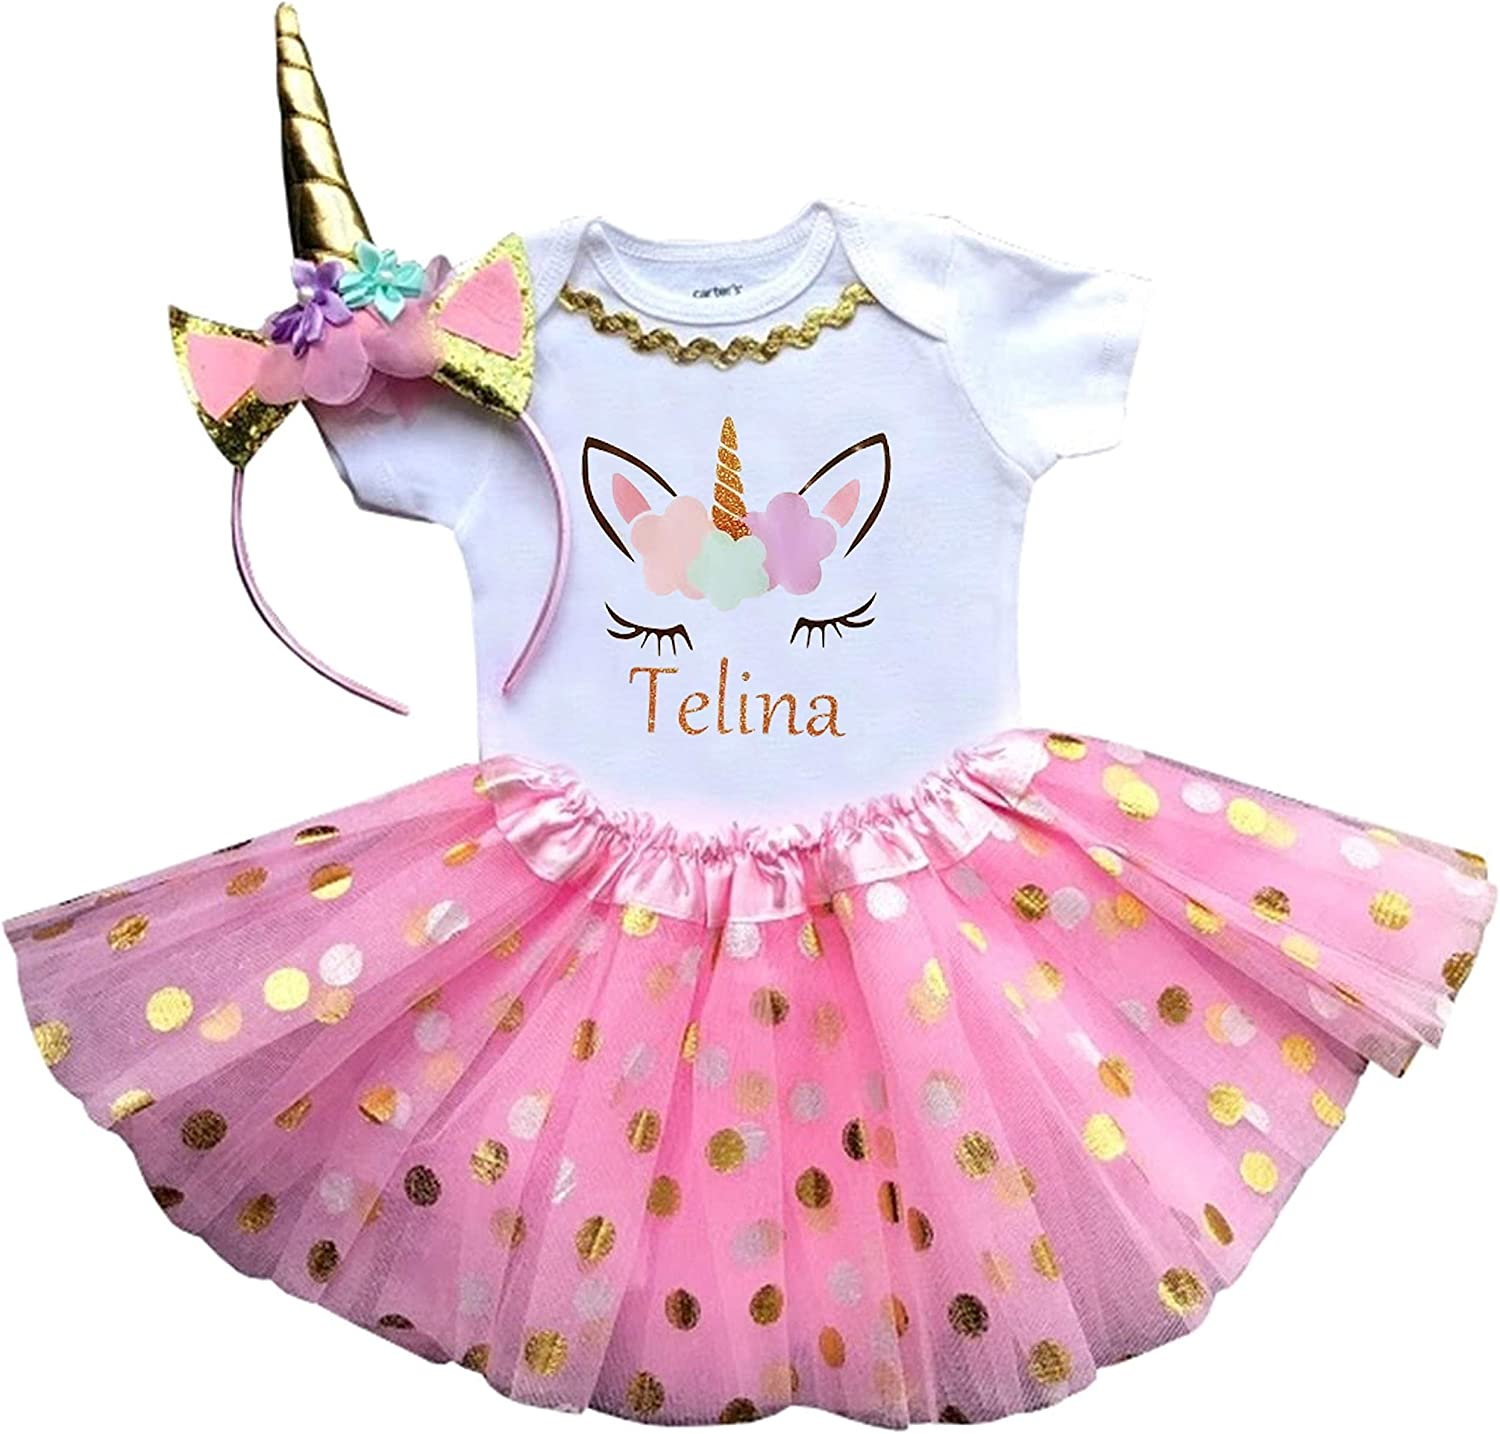 1st Birthday Girl Unicorn Pink and Gold Outfit Personalized 812yggszpfL